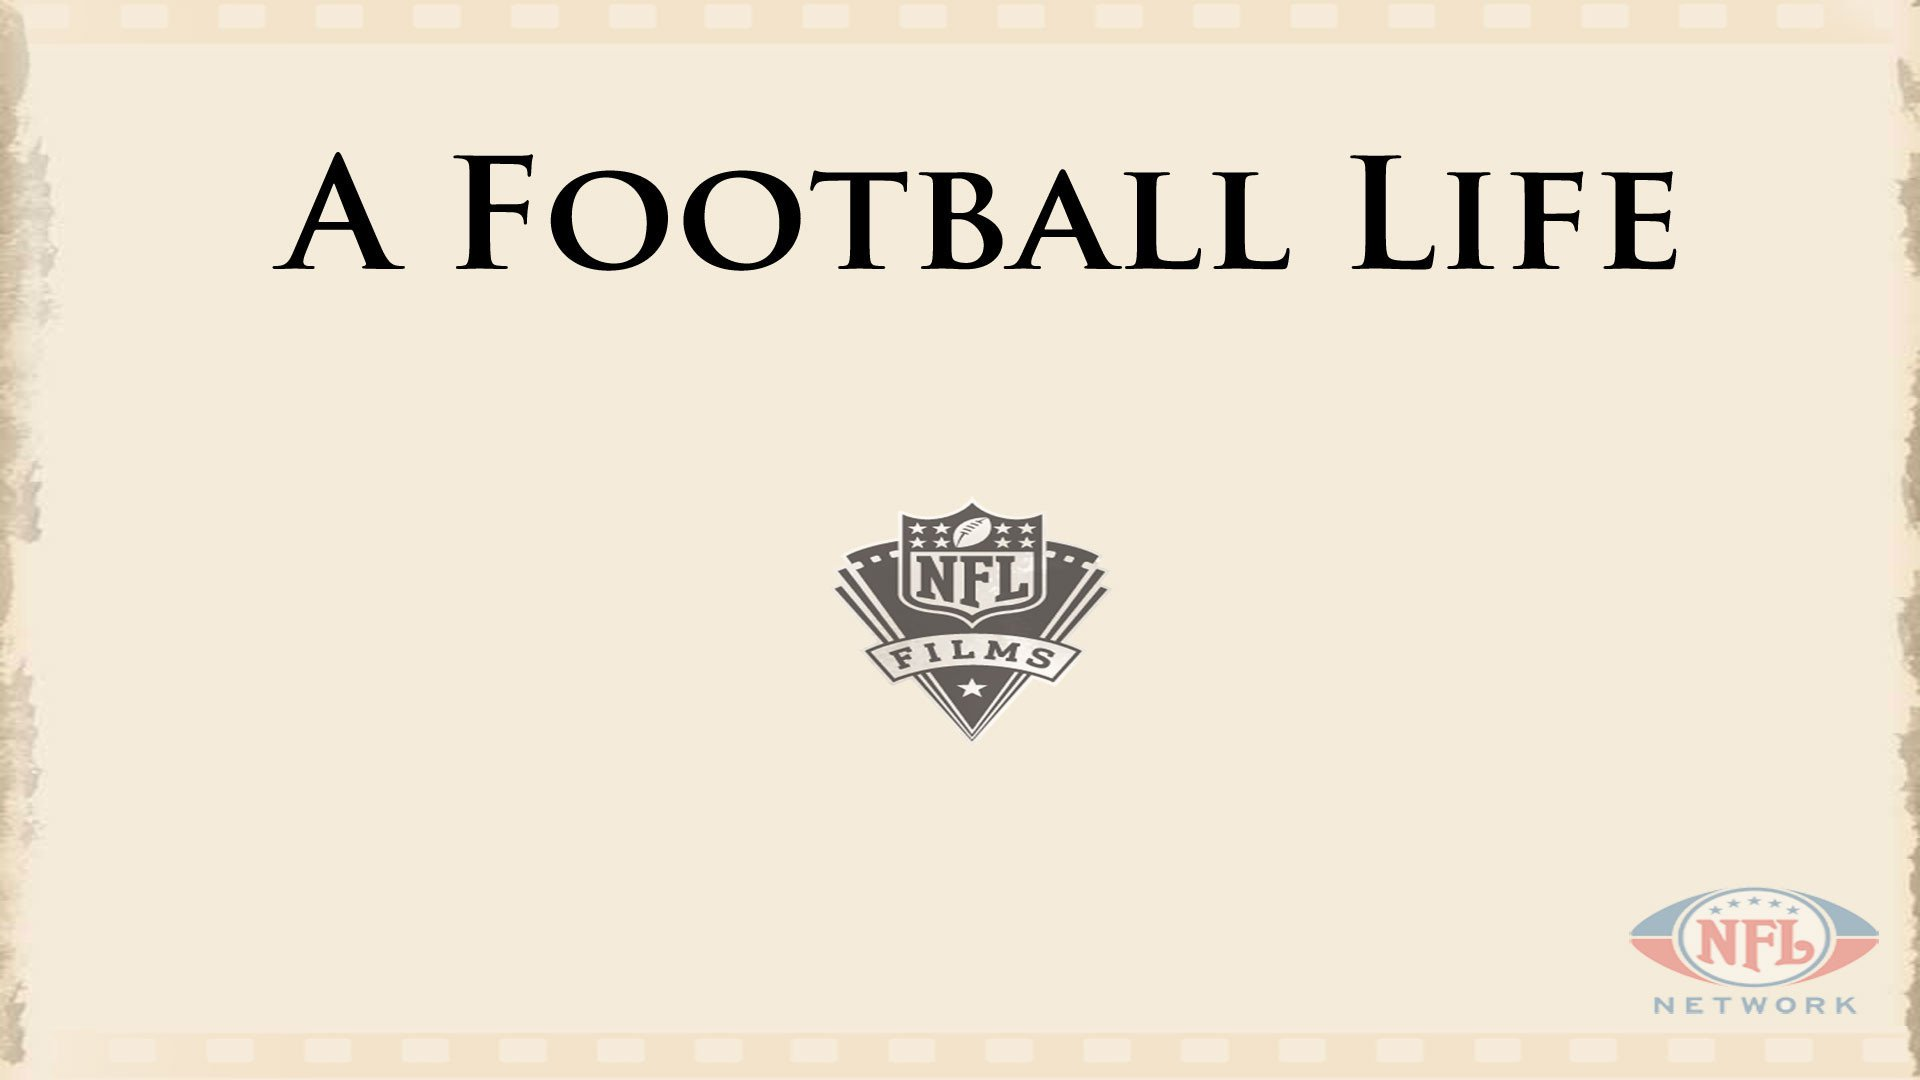 Return of 'A Football Life' and 'The Timeline' to NFL Network to highlight 25 NFL Films documentaries for 2016